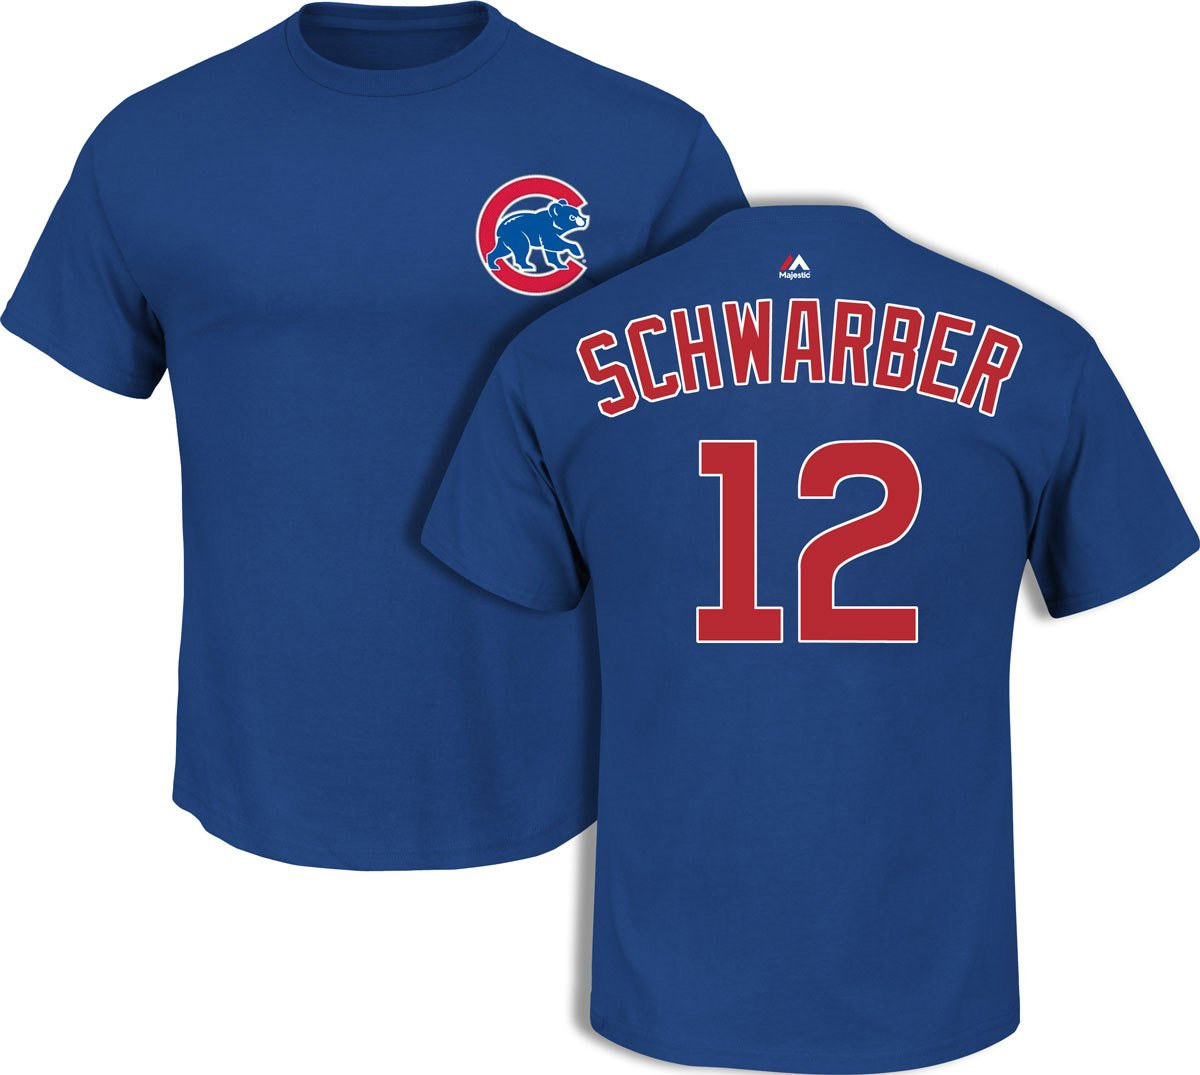 info for 008ab 18a56 Amazon.com: Kyle Schwarber Chicago Cubs Baby/Infant Blue ...